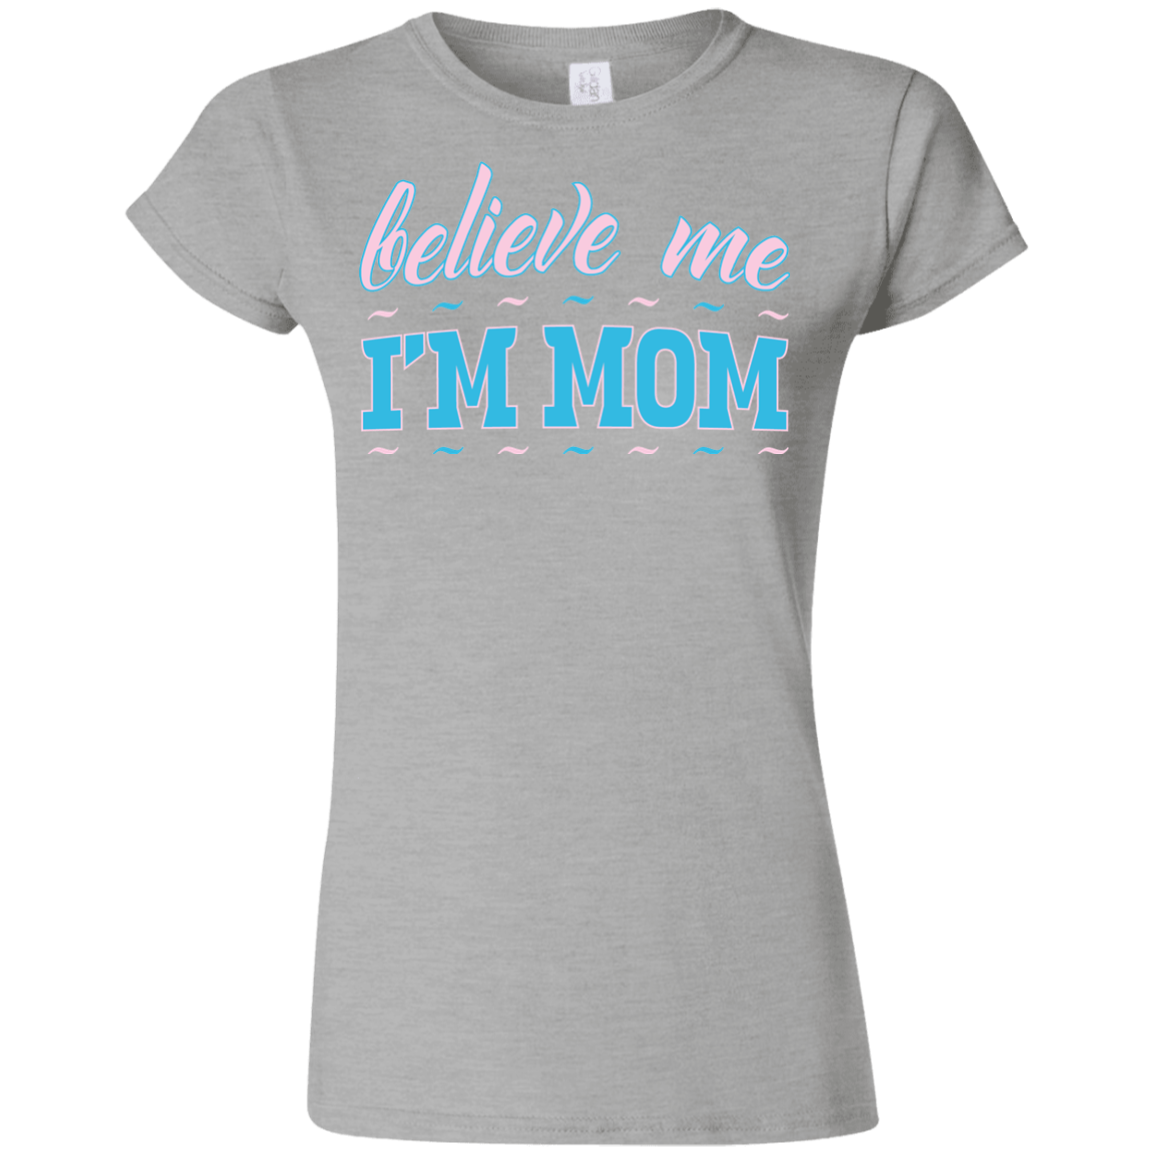 Believeme - G640L Gildan Softstyle Ladies' T-Shirt